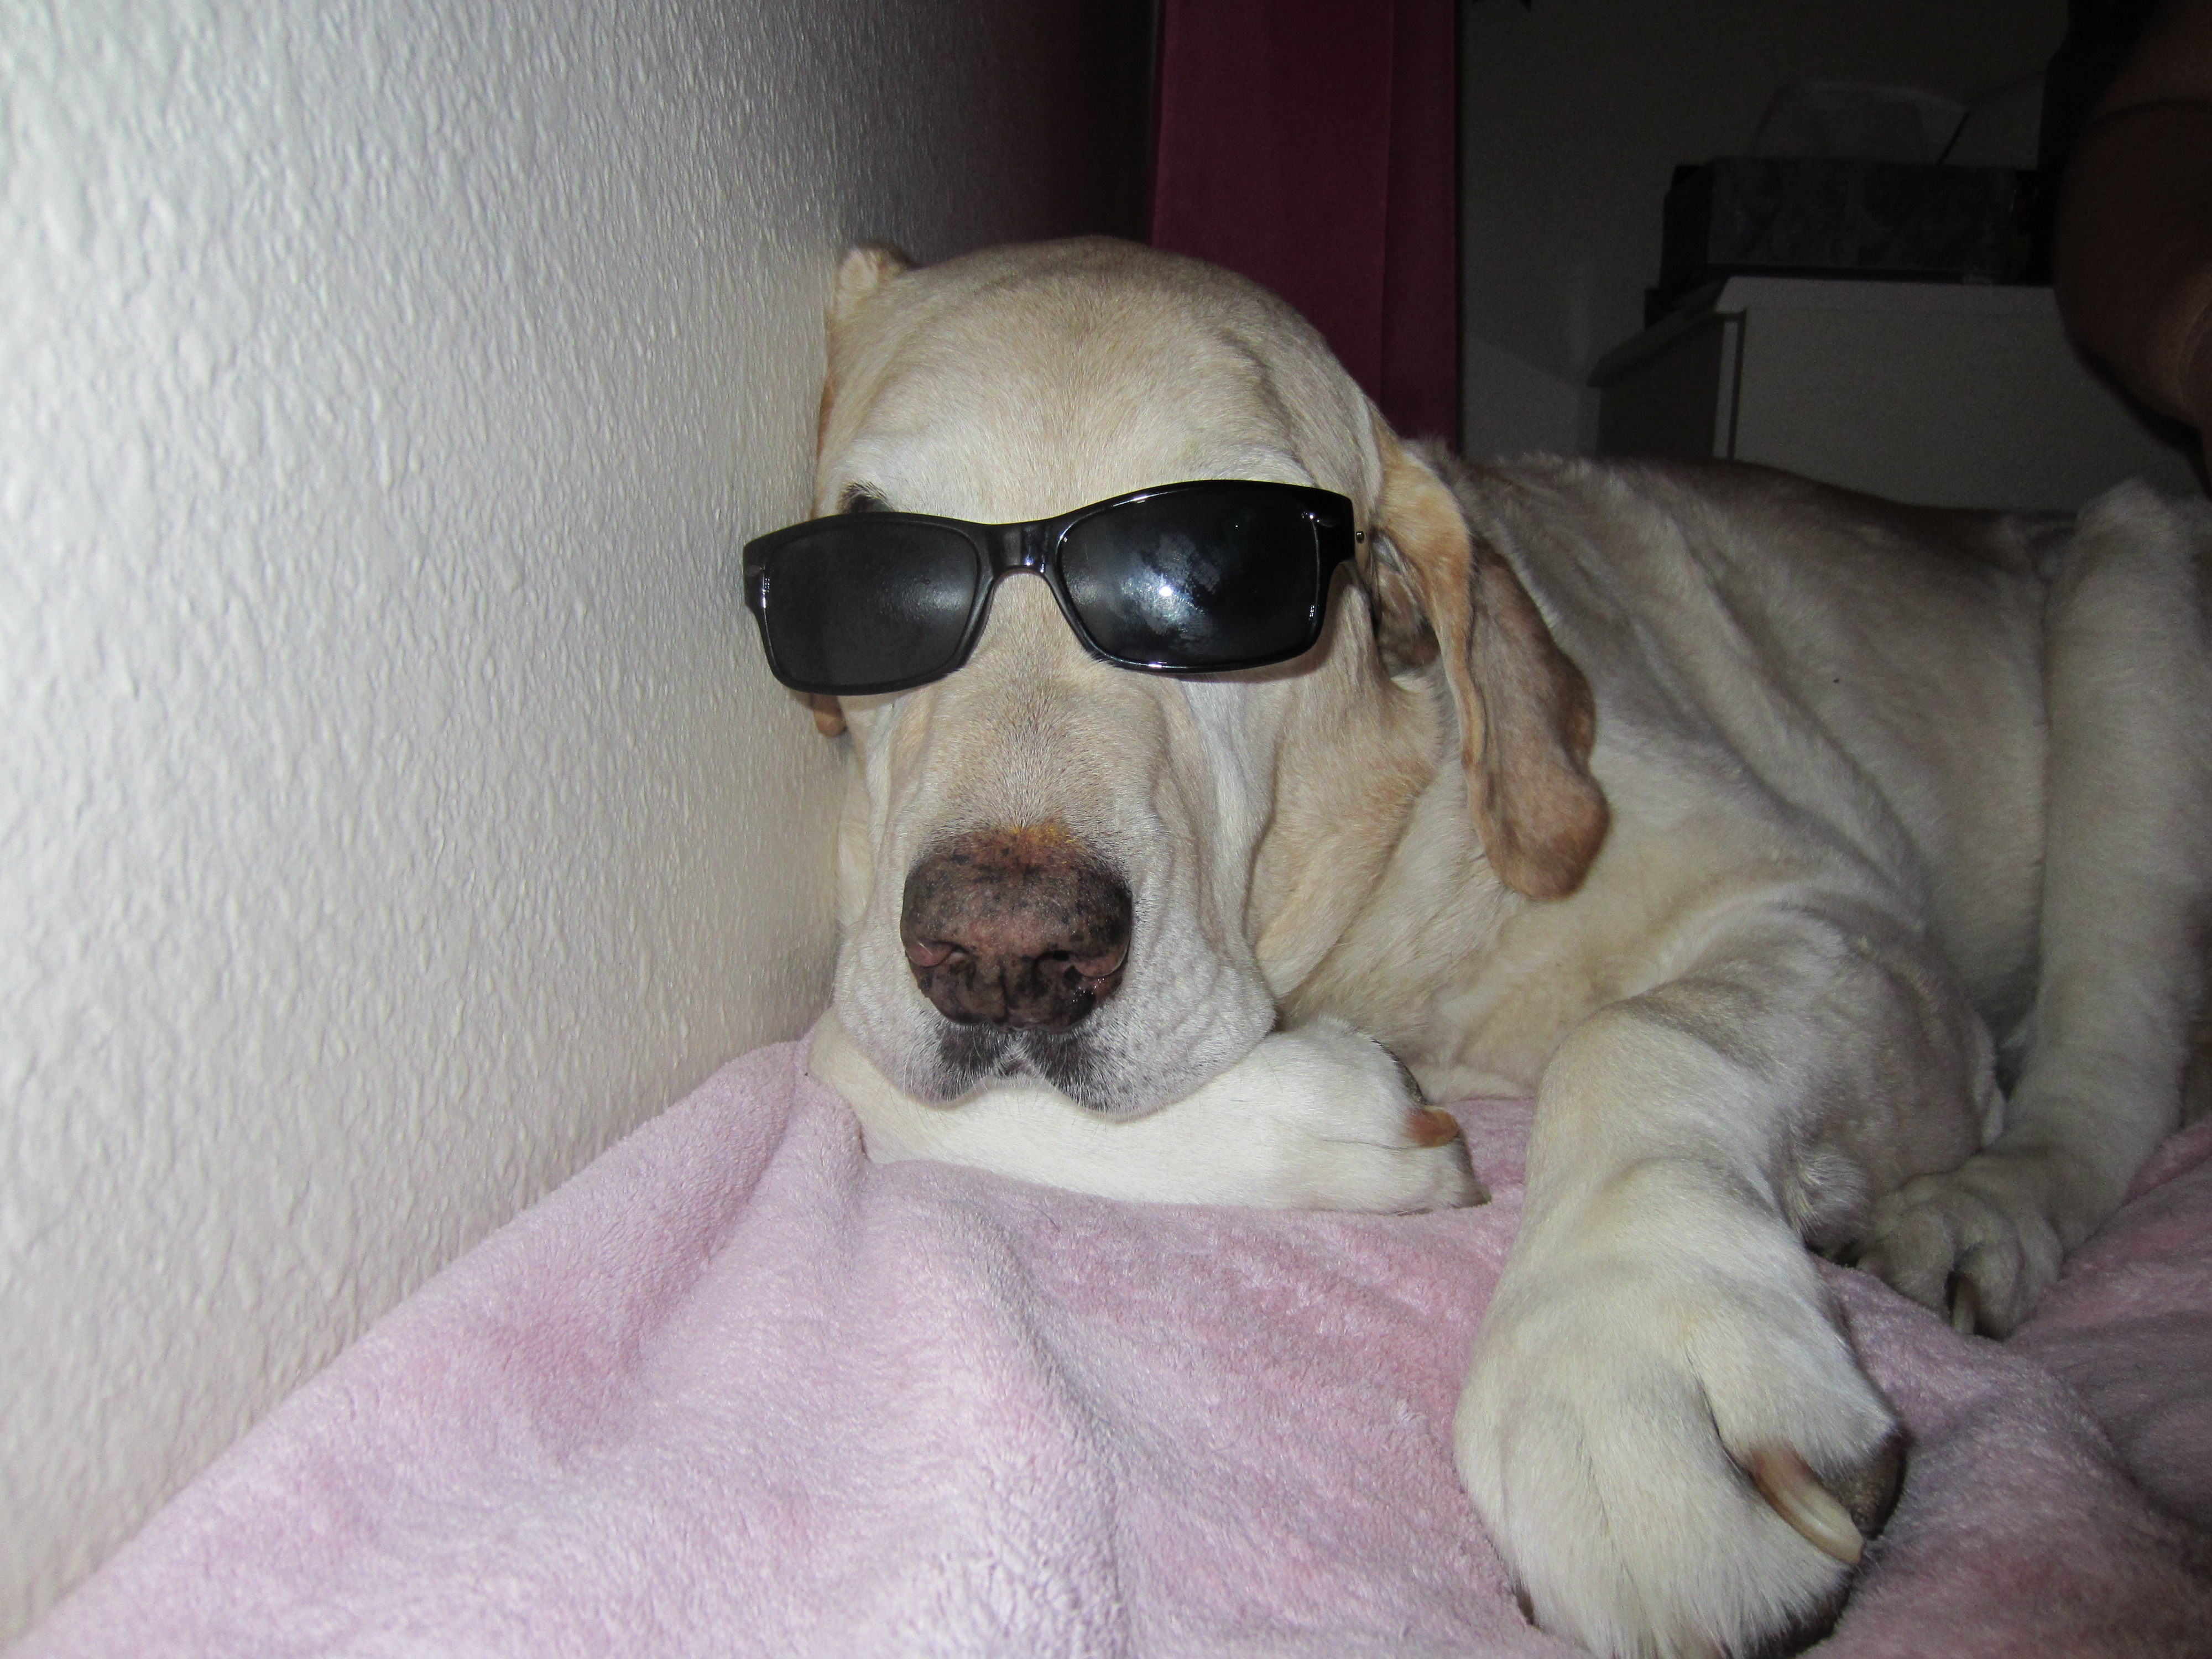 Boomer with shades